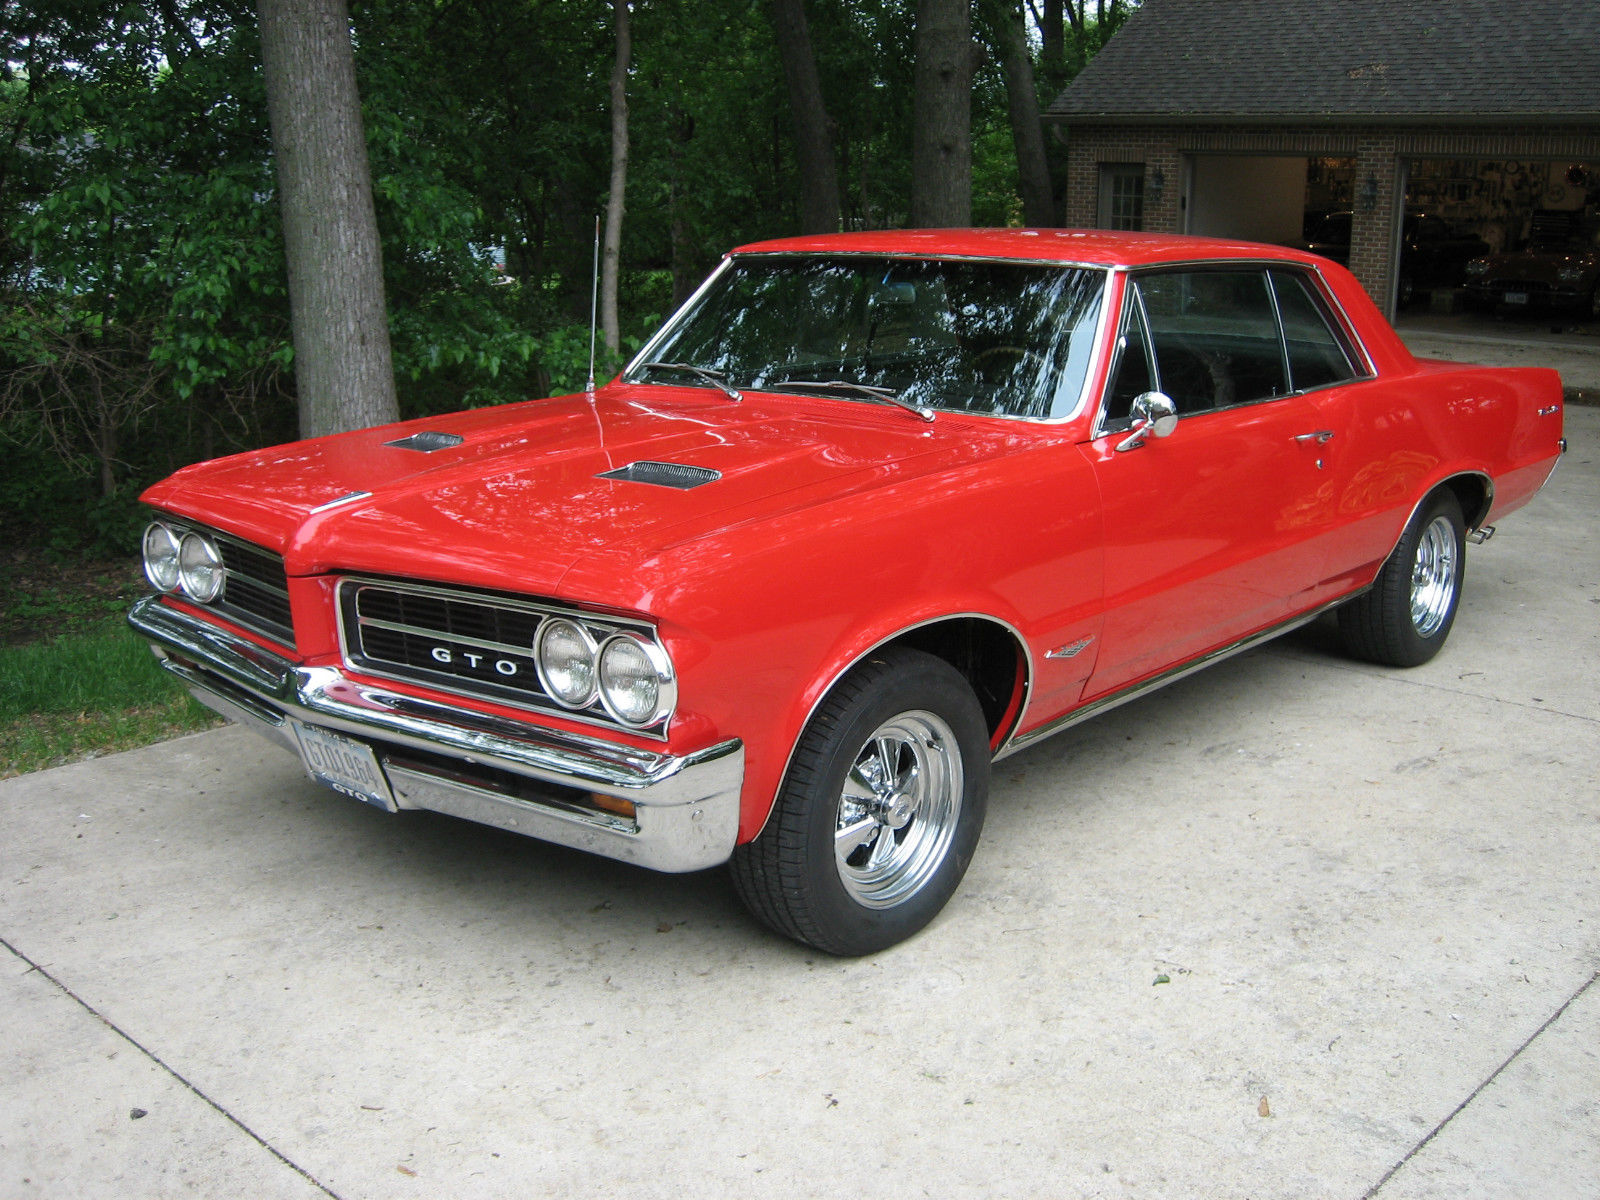 pontiac gto 1964 red 389 original classic pontiac gto 1964 for sale. Black Bedroom Furniture Sets. Home Design Ideas